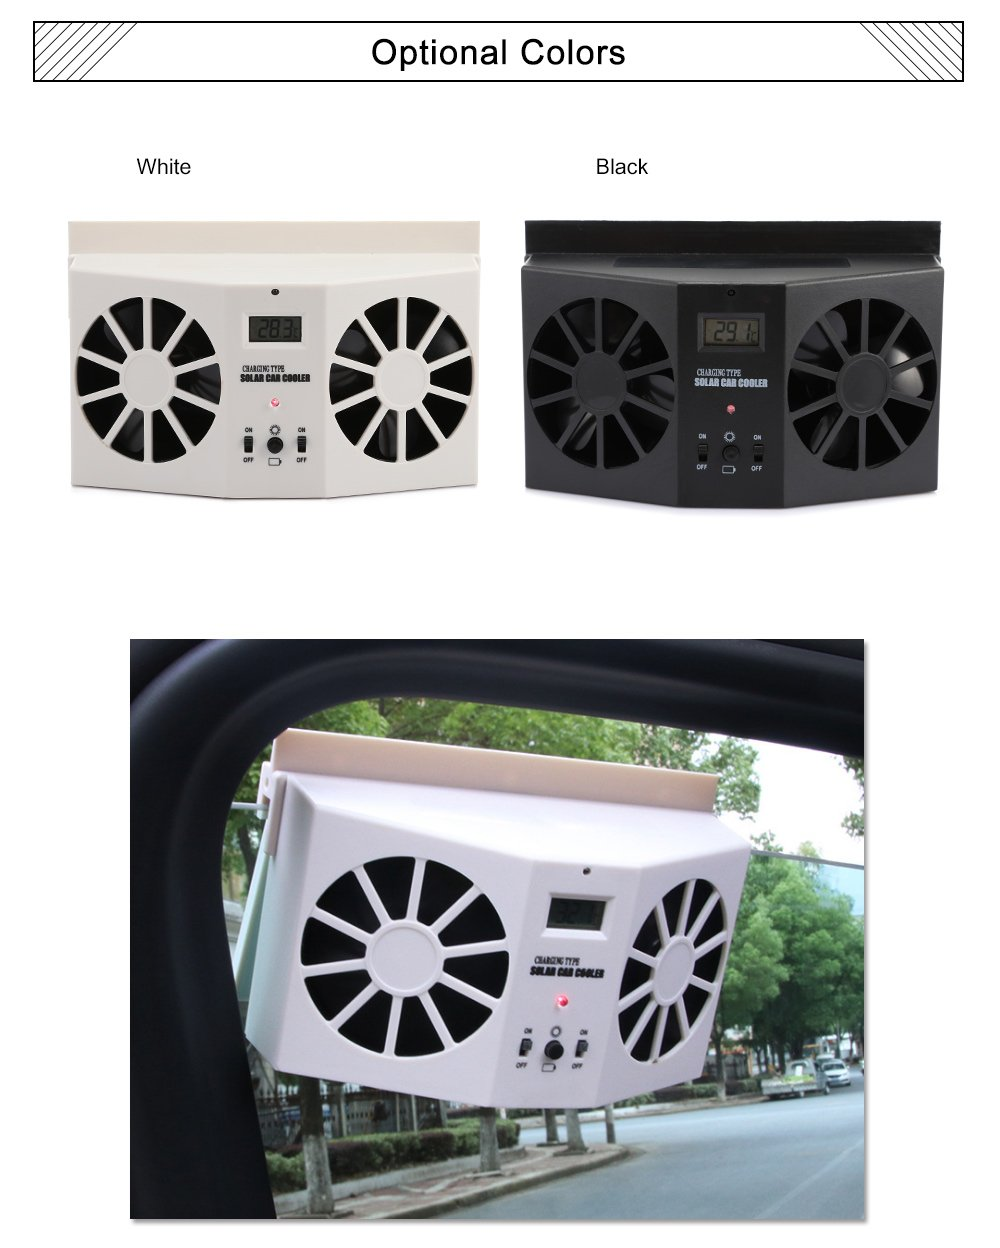 AUTOLOVER Solar Powered Car Cool Cooler Fan Auto Front/Rear Window Air Vent  Exhaust Fan Vehicle Radiator Vent with Ventilation (White)